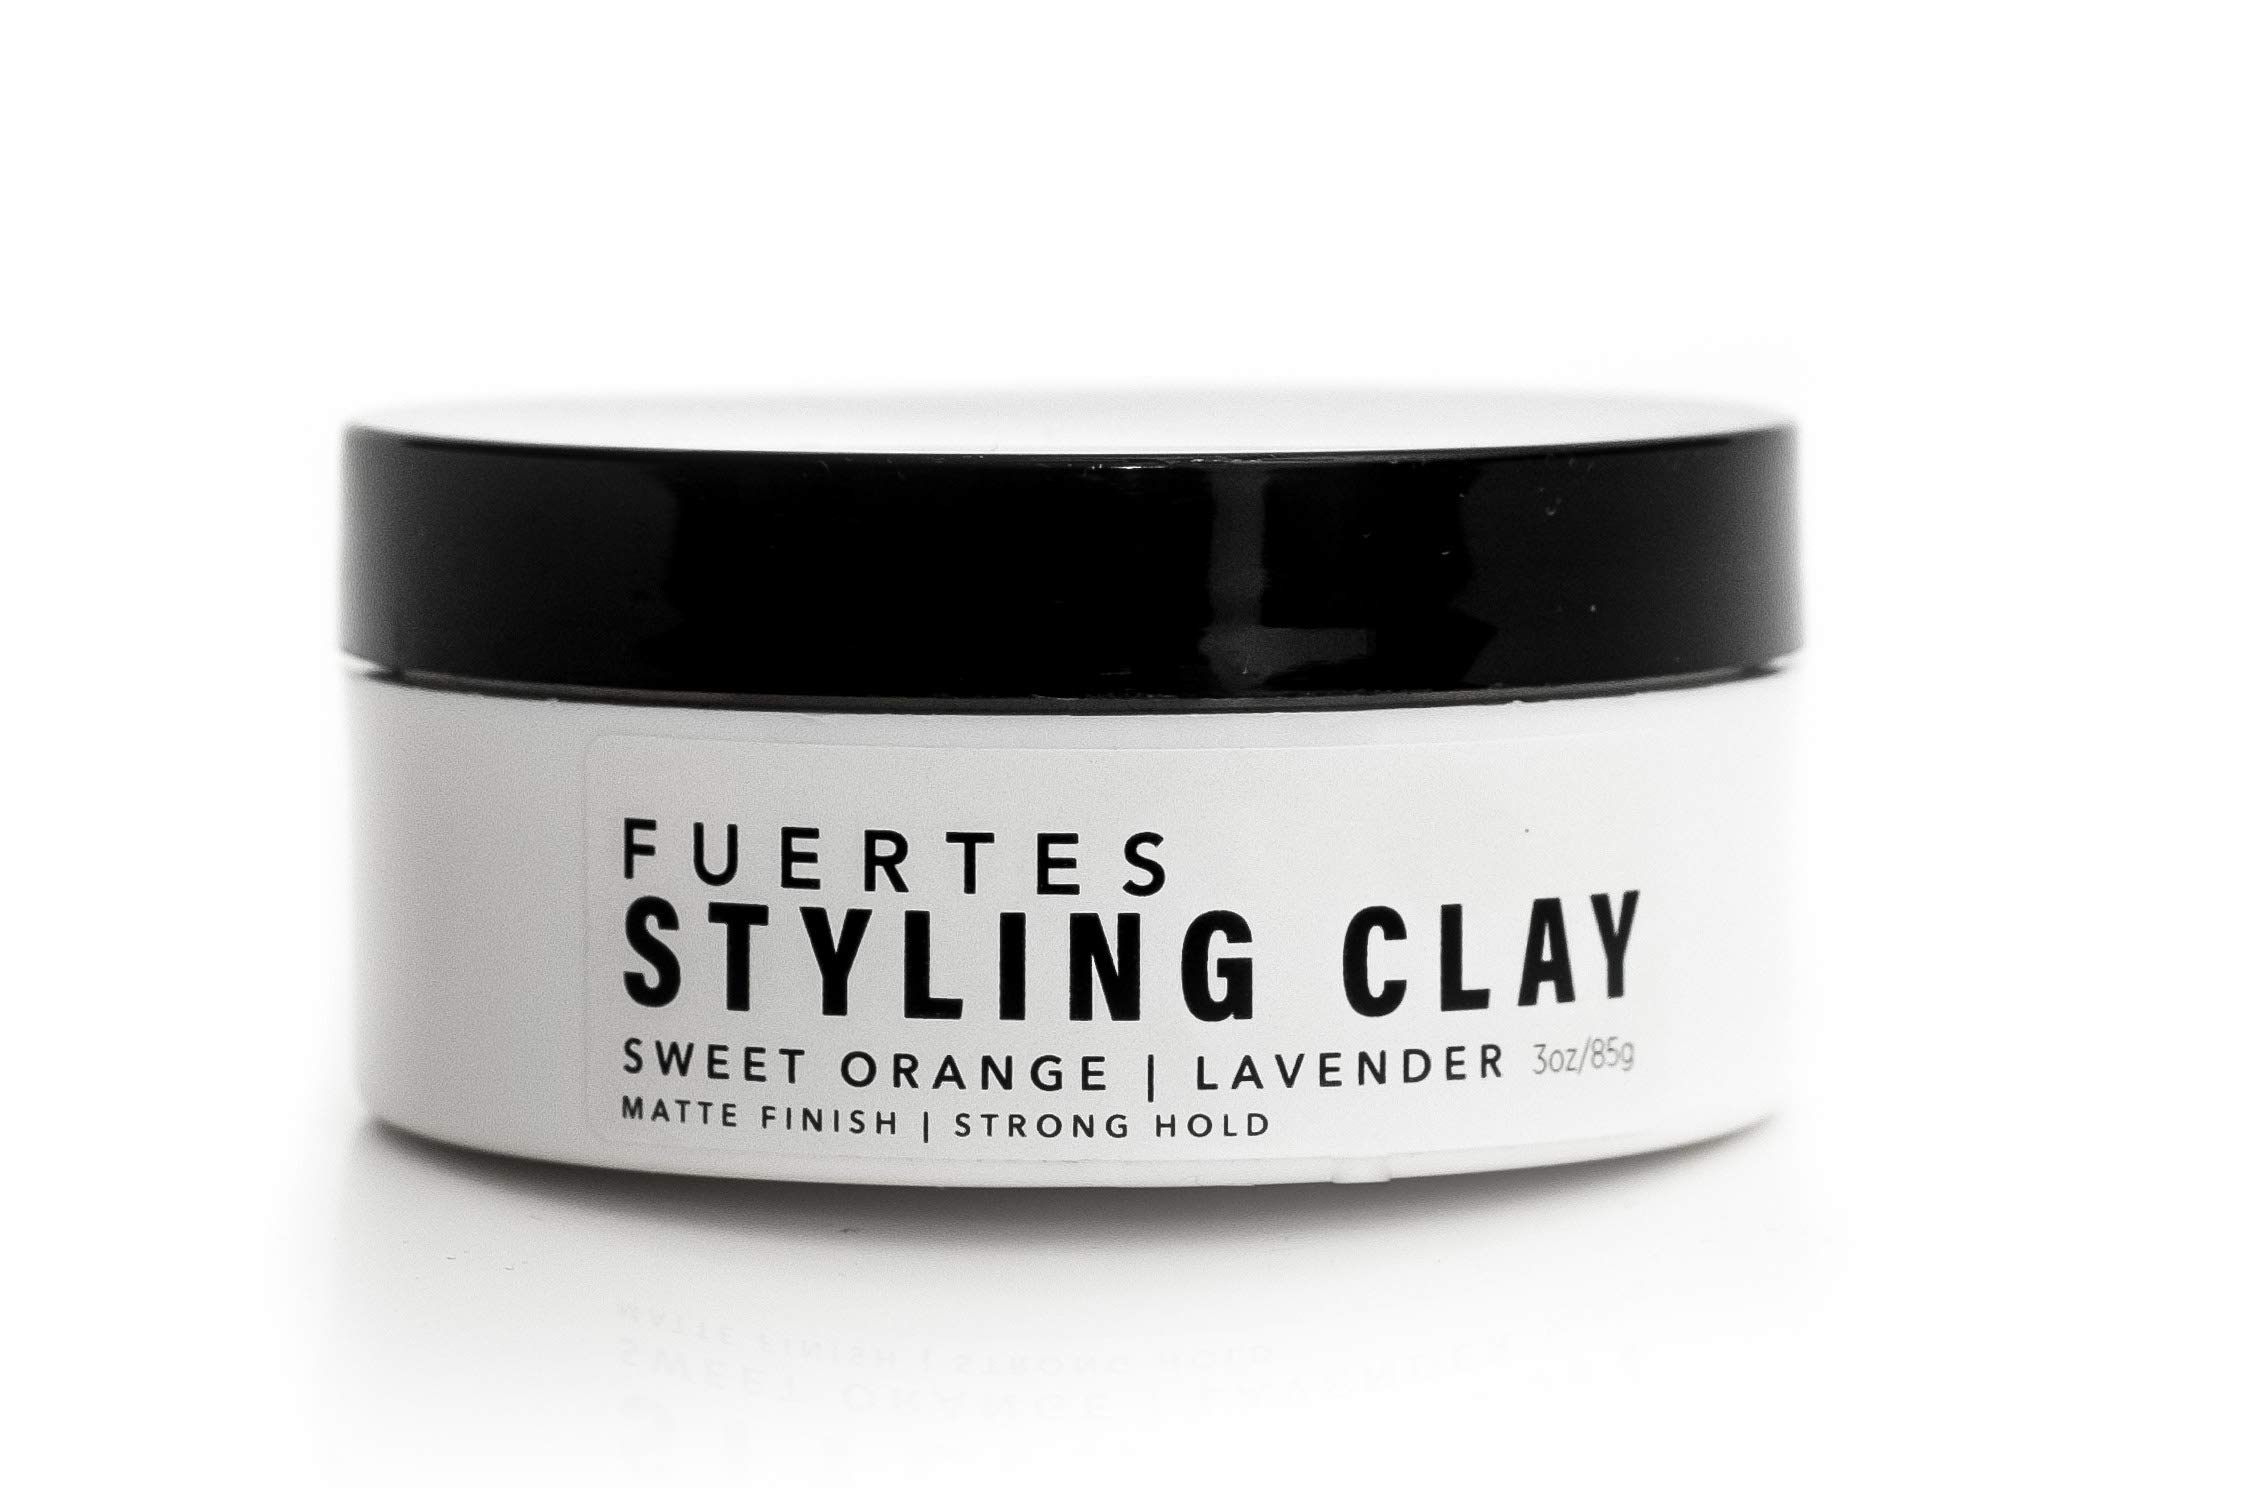 Fuertes Styling Clay by Fuertes Styling Products